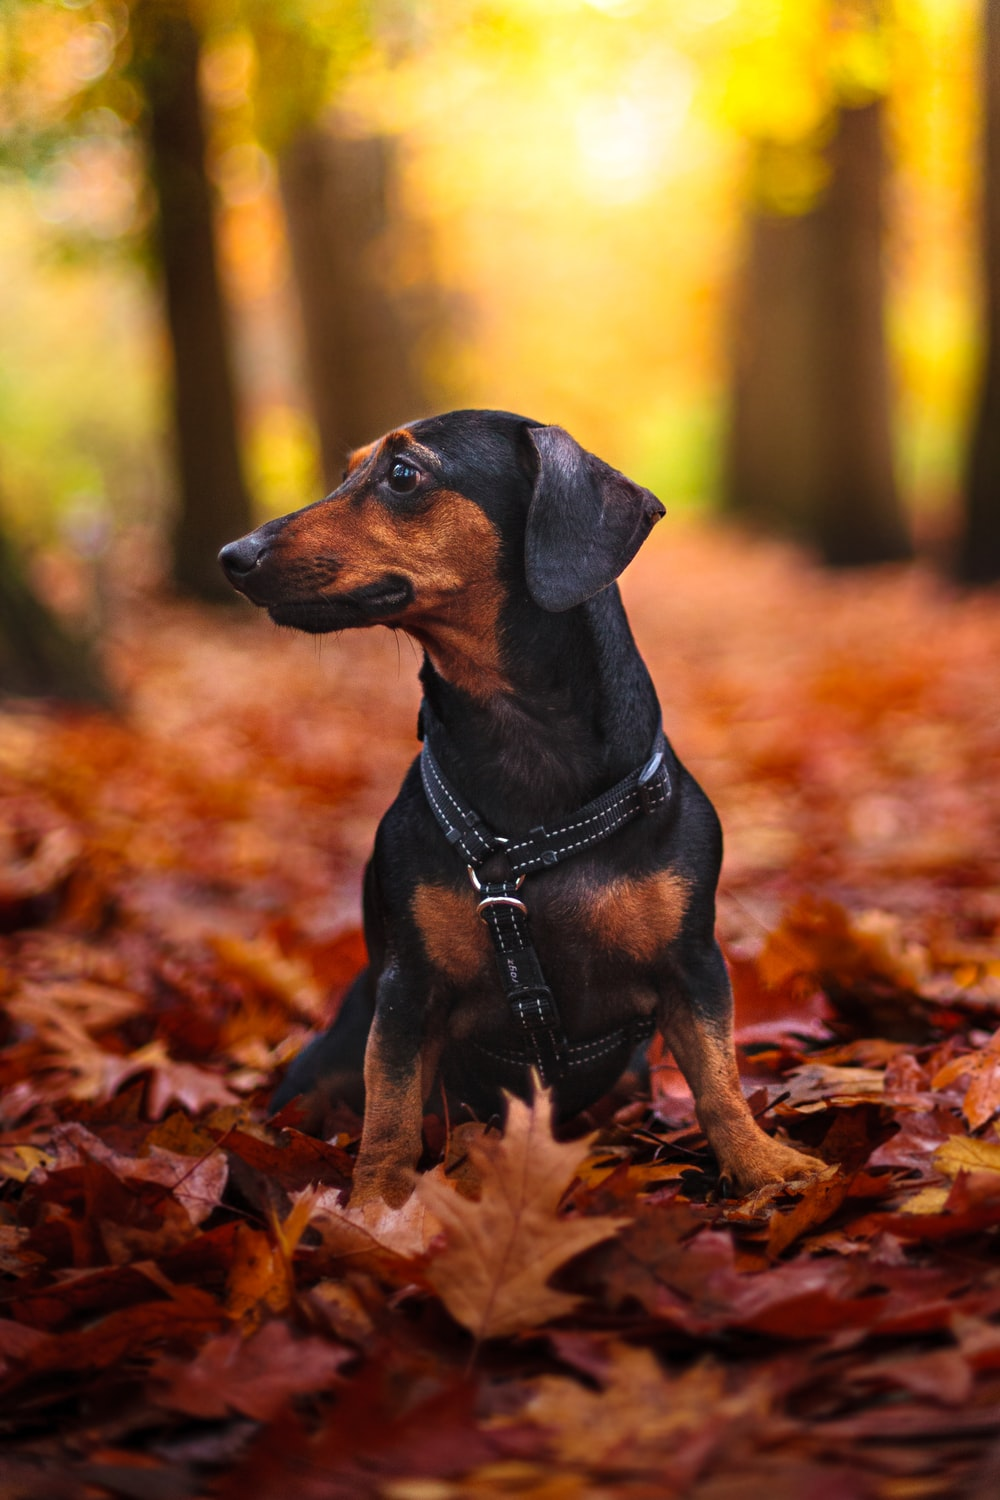 black and tan short coat small dog on brown dried leaves